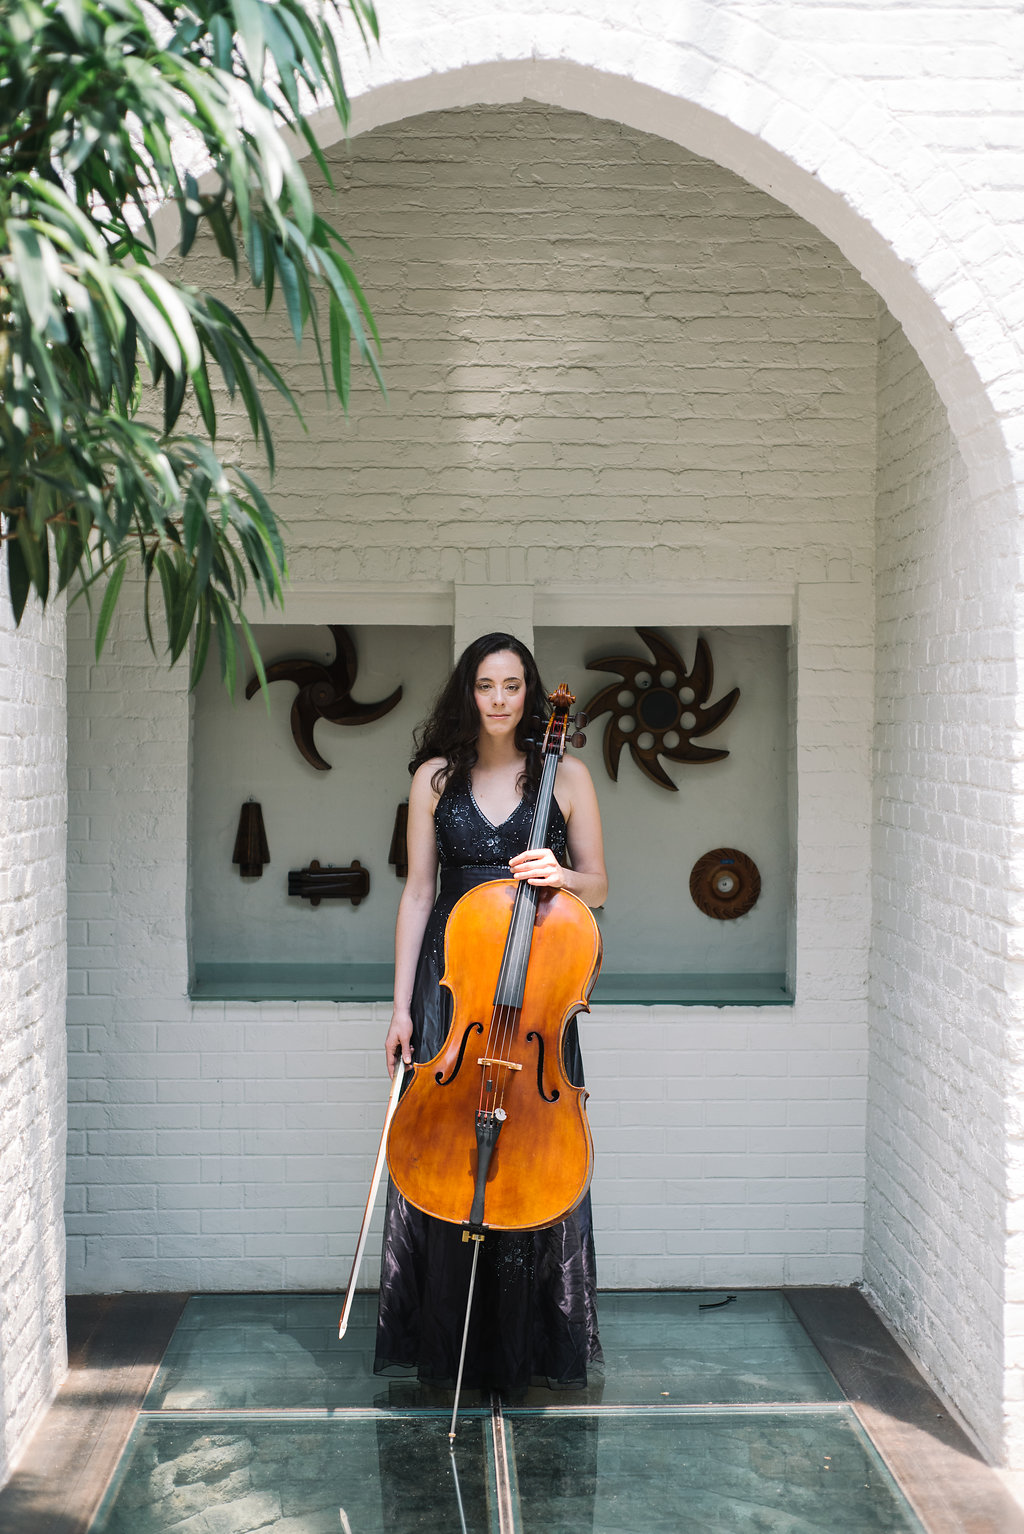 Diana Golden - Cellist